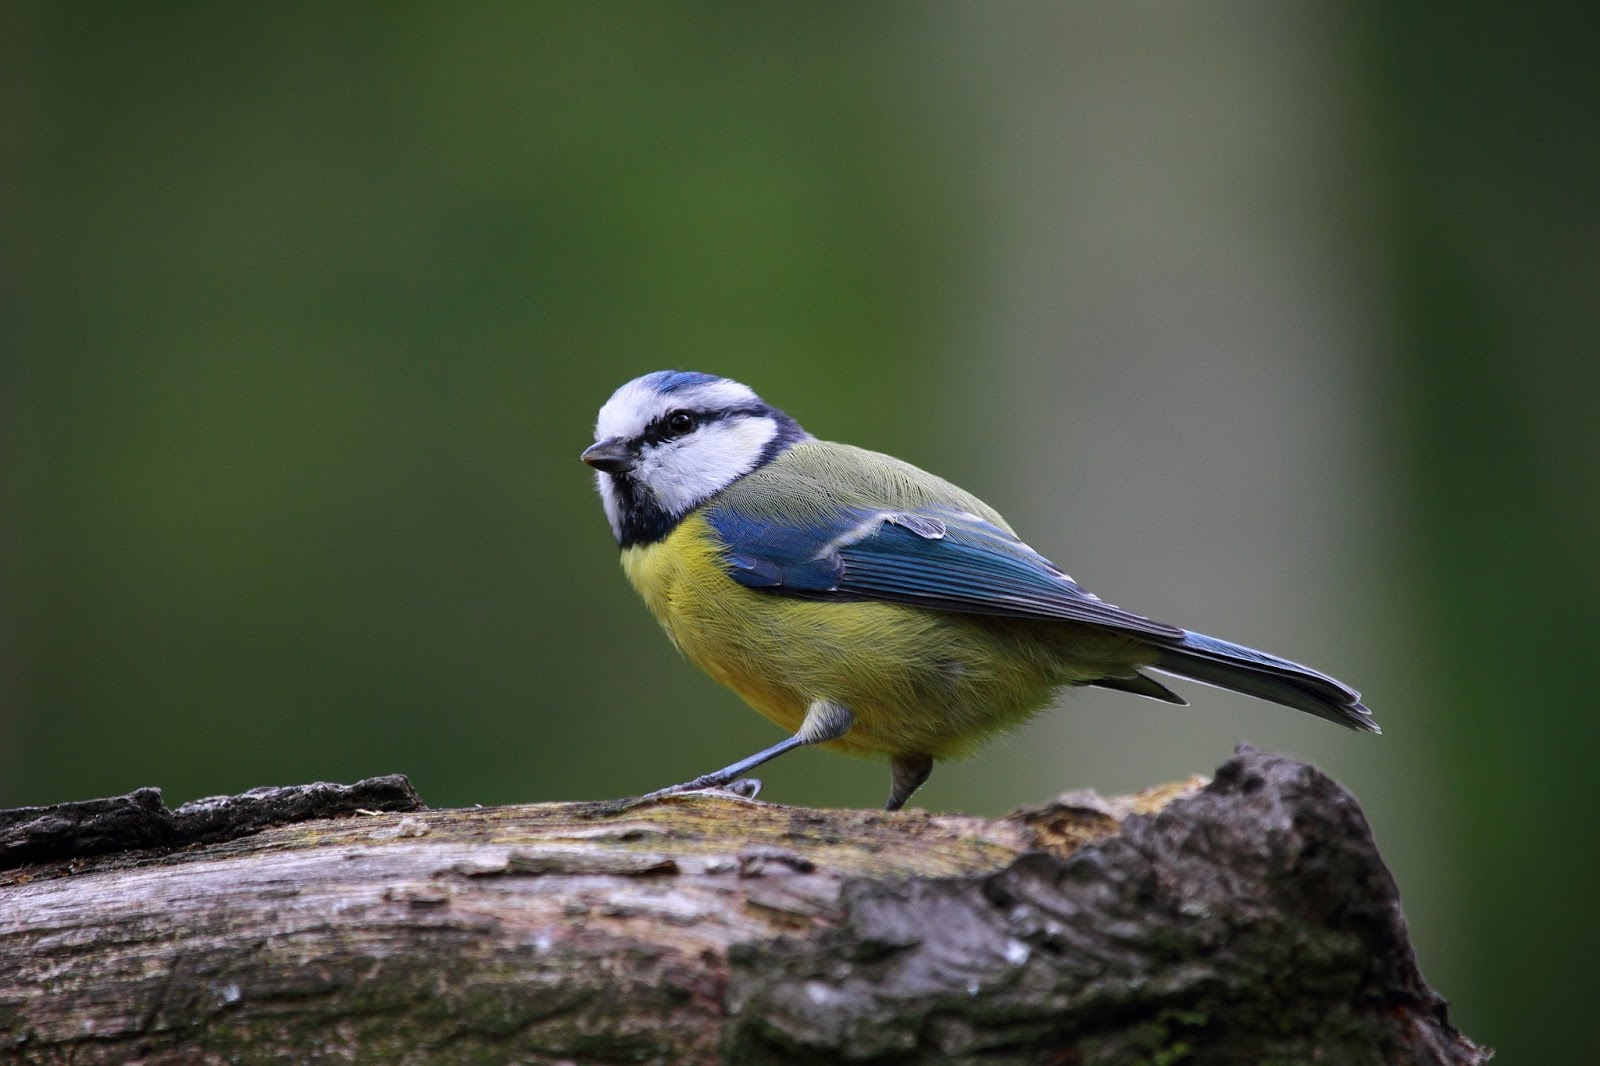 Picture of a blue titmouse bird.